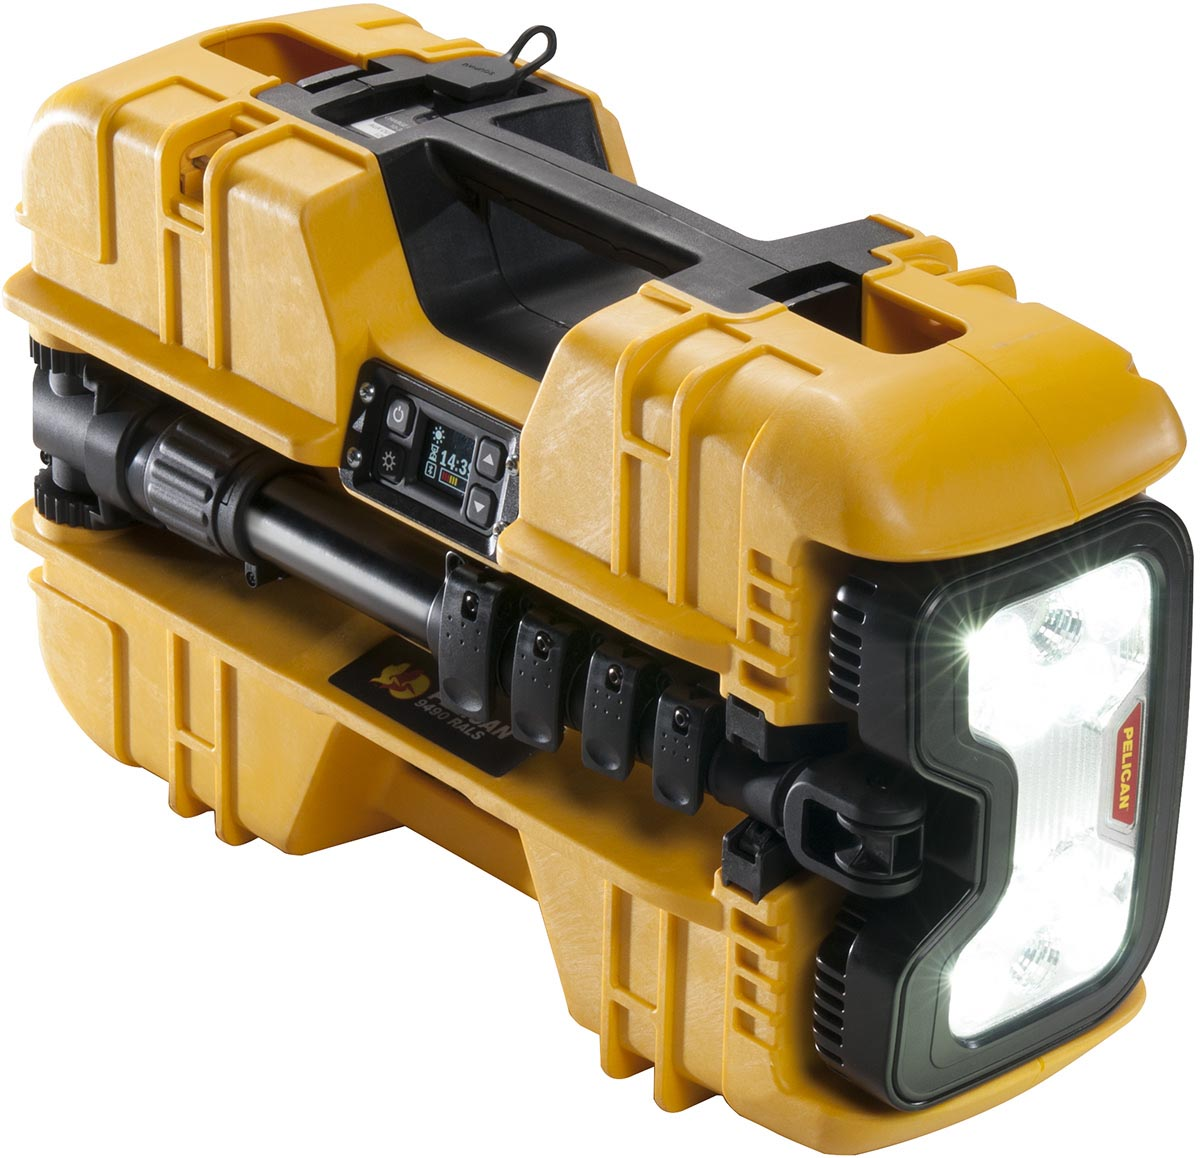 pelican brightest lumens portable spotlight